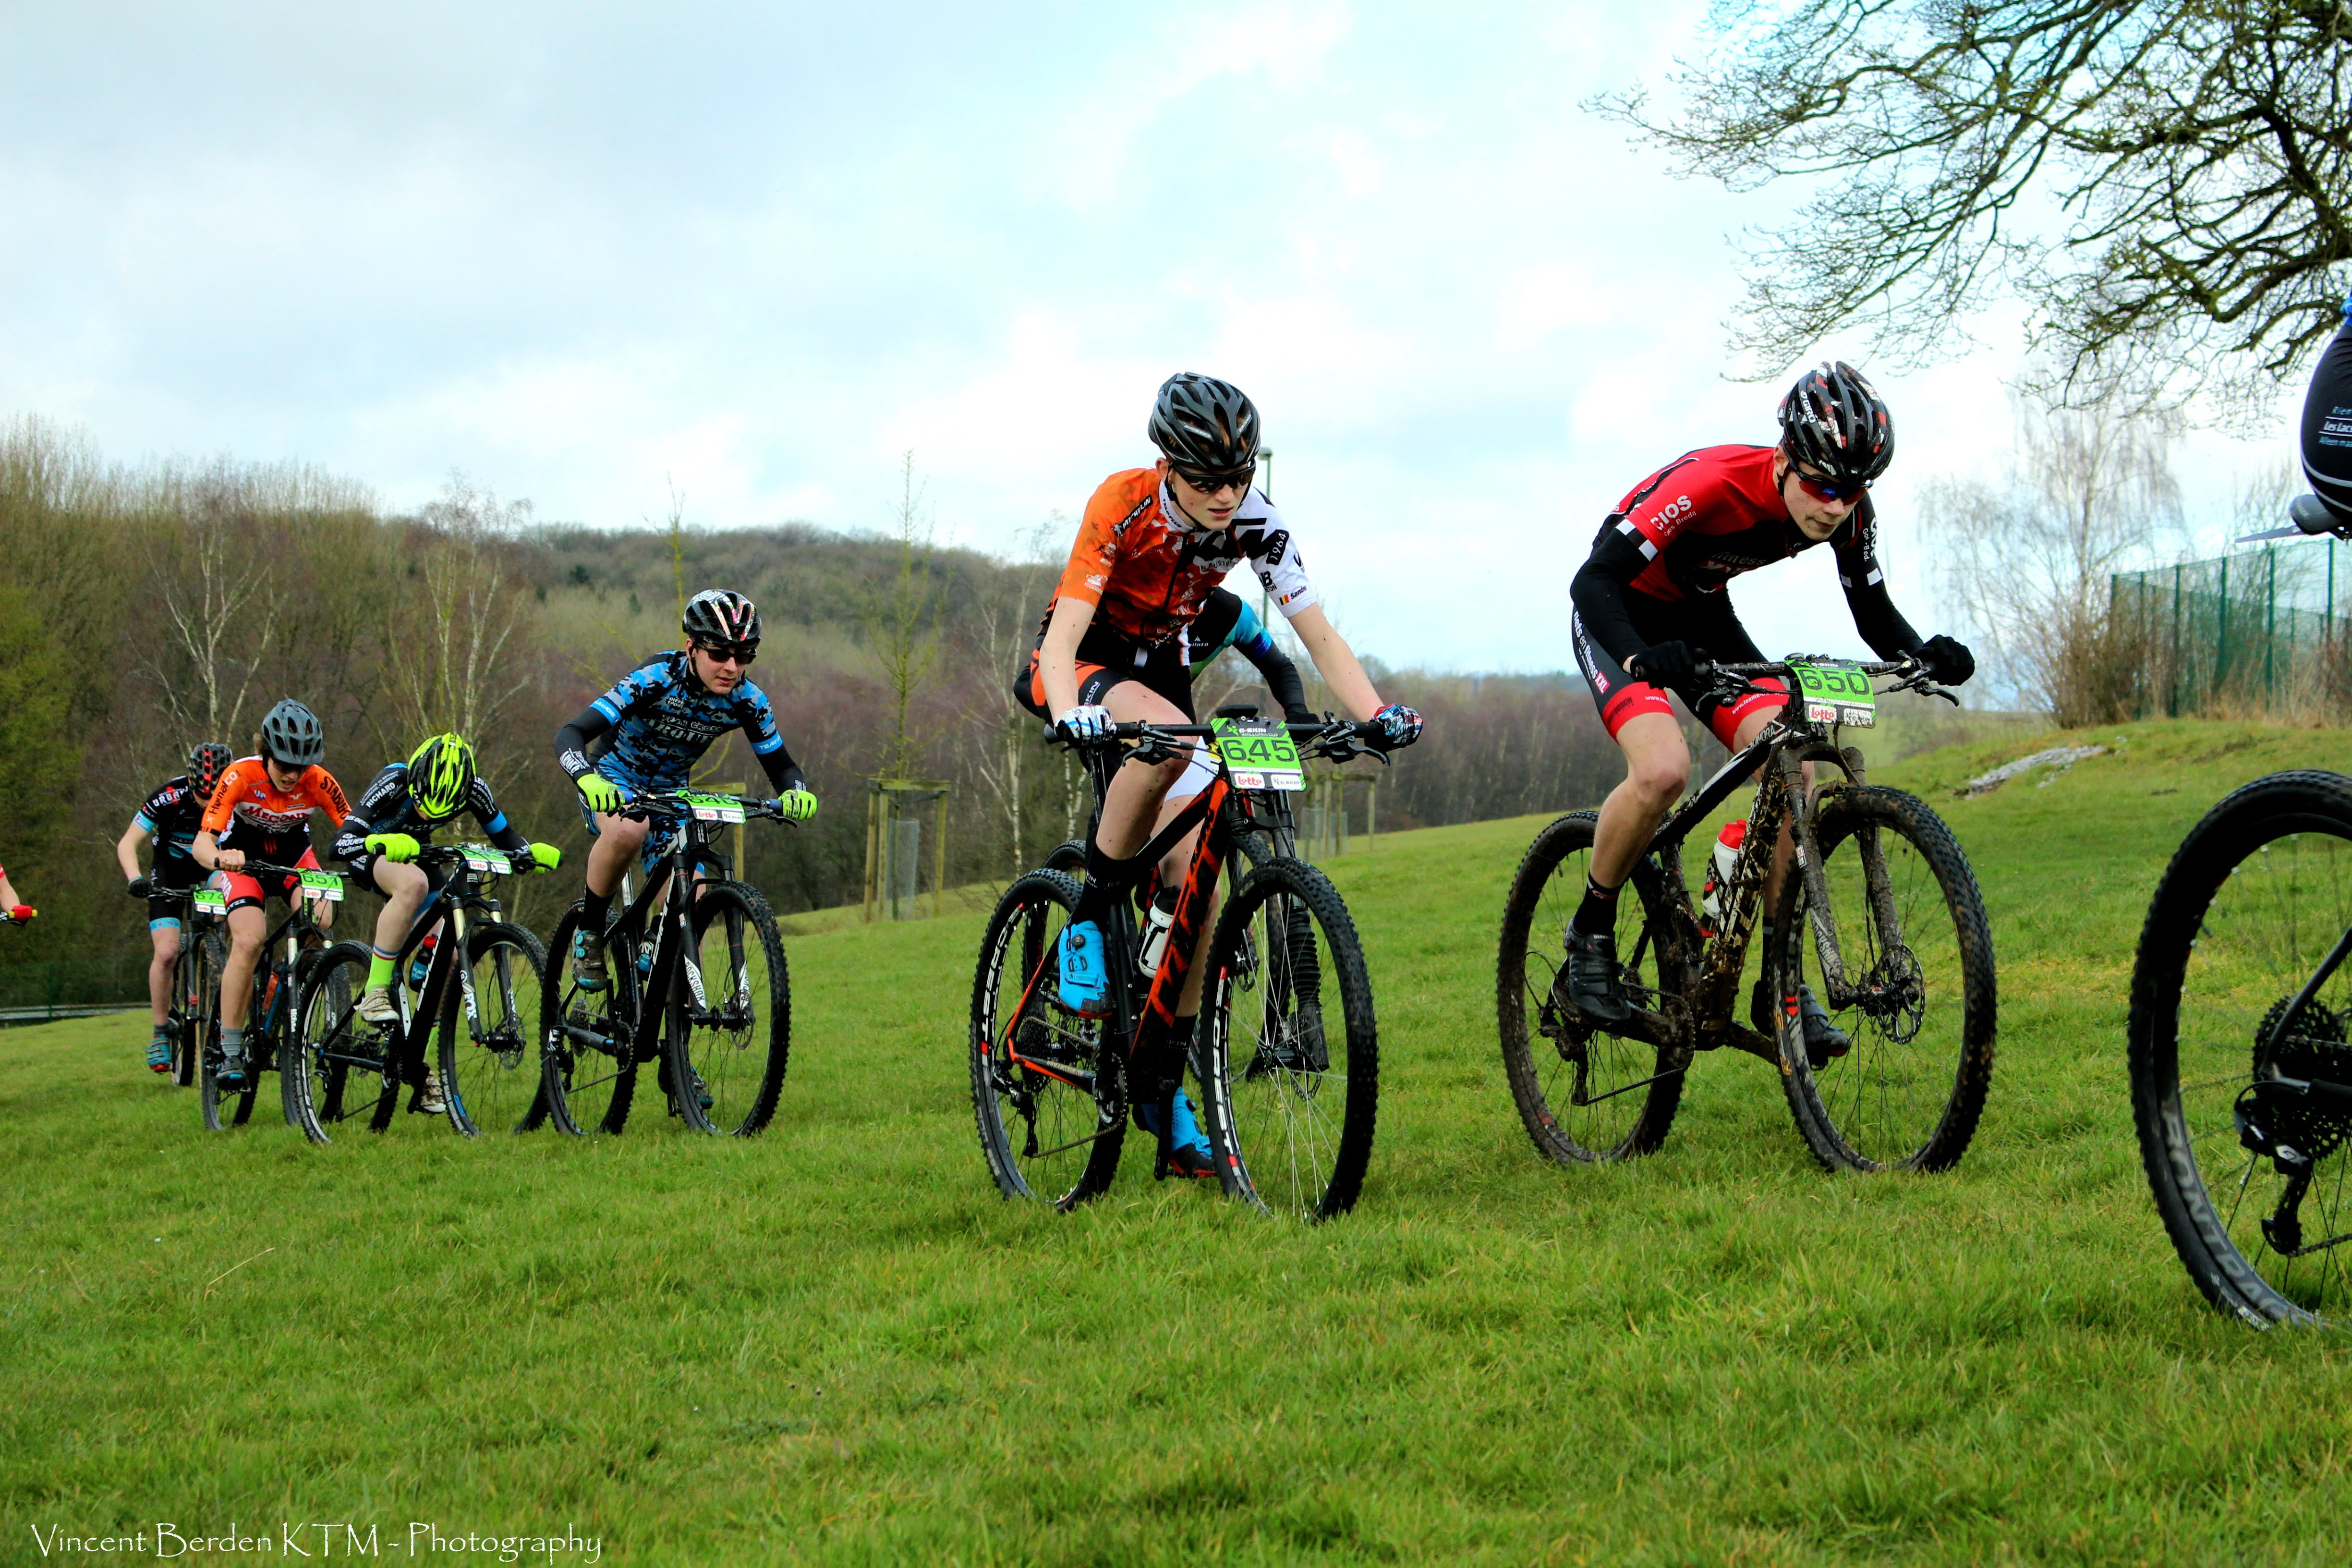 KTM BikeVision bikers over hun G-skin Walloniacup in Cerfontaine